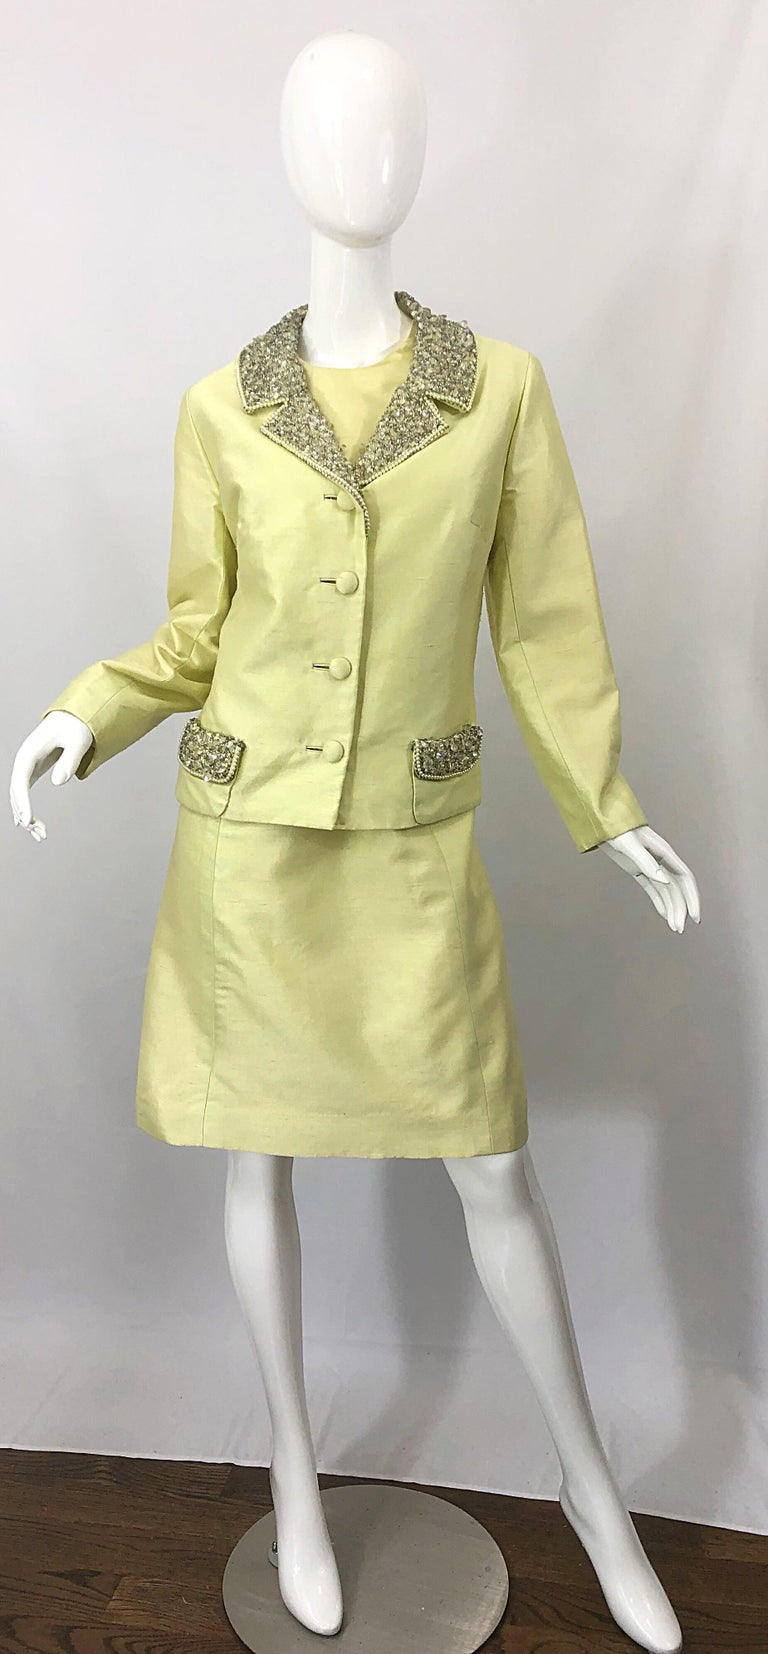 Chic vintage 1960s JACK BRYAN yellow silk shantung A-Line dress and jacket ensemble! Dress features a tailored bodice with a forgiving A-Line shape skirt. Full metal zipper up the back with hook-and-eye closure. Matching jacket has hundreds of